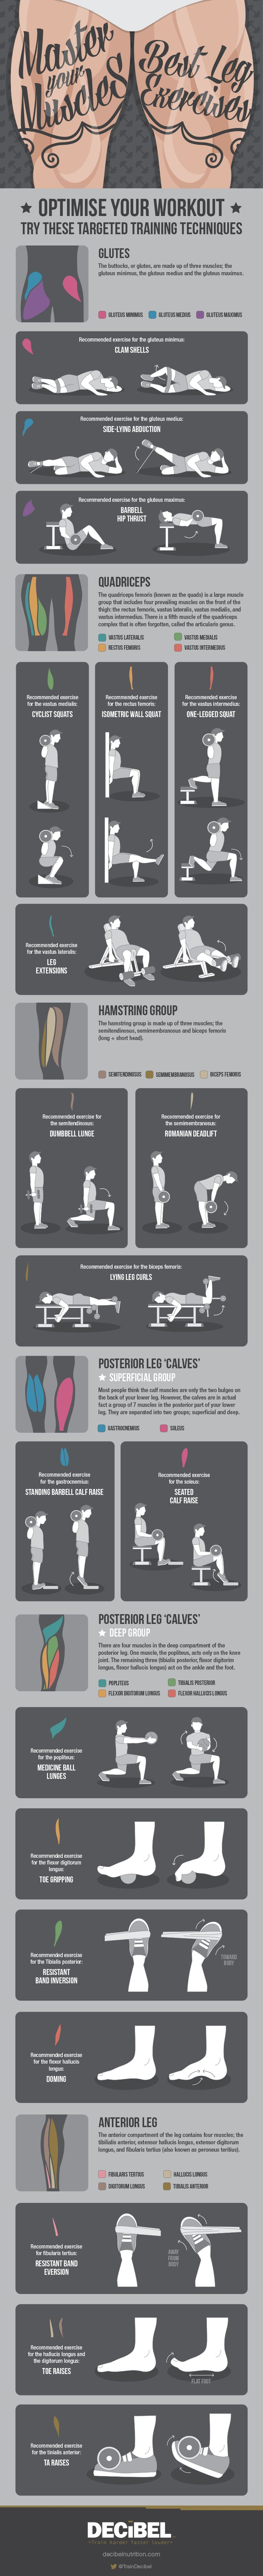 Never skip leg day again with our detailed leg strengthening guide. Master your muscles!